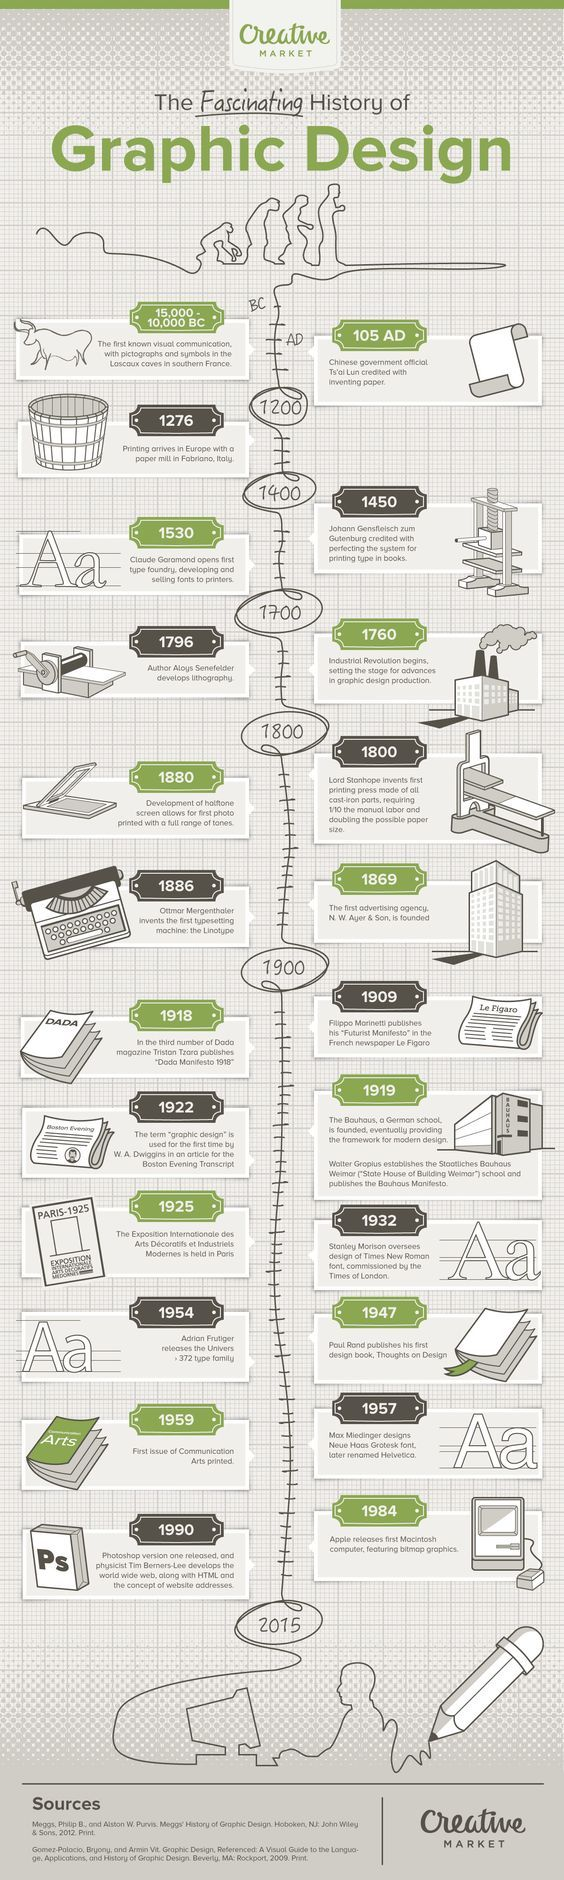 ⚠️ 17,000 years of graphic design history in one awesome infographic!: